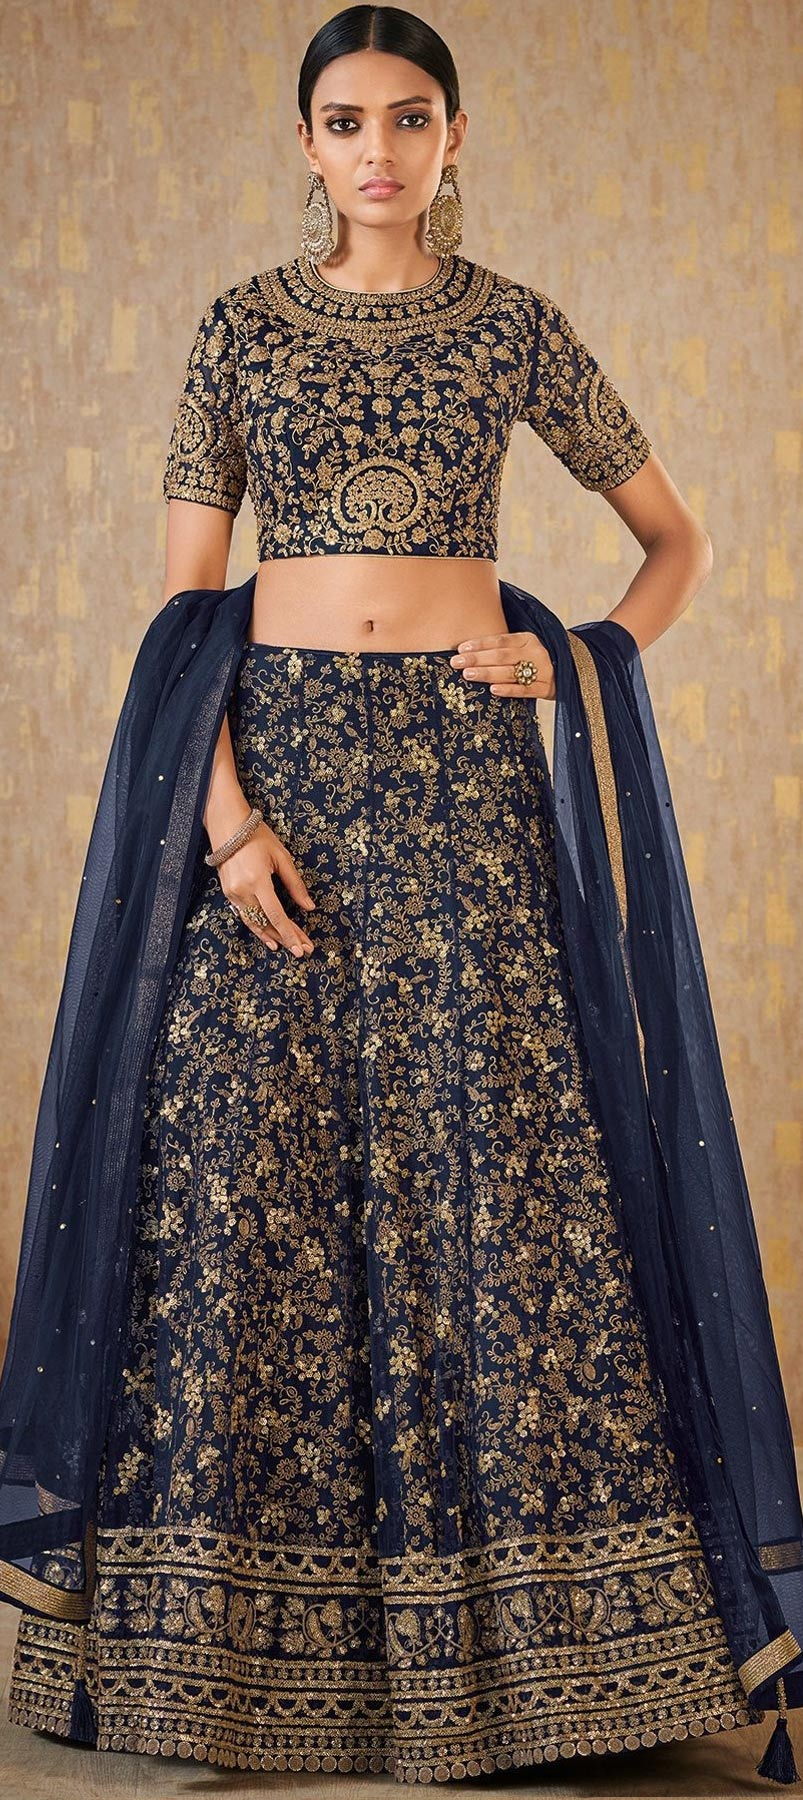 Banarasi Silk Reception Lehenga in Blue with Resham work